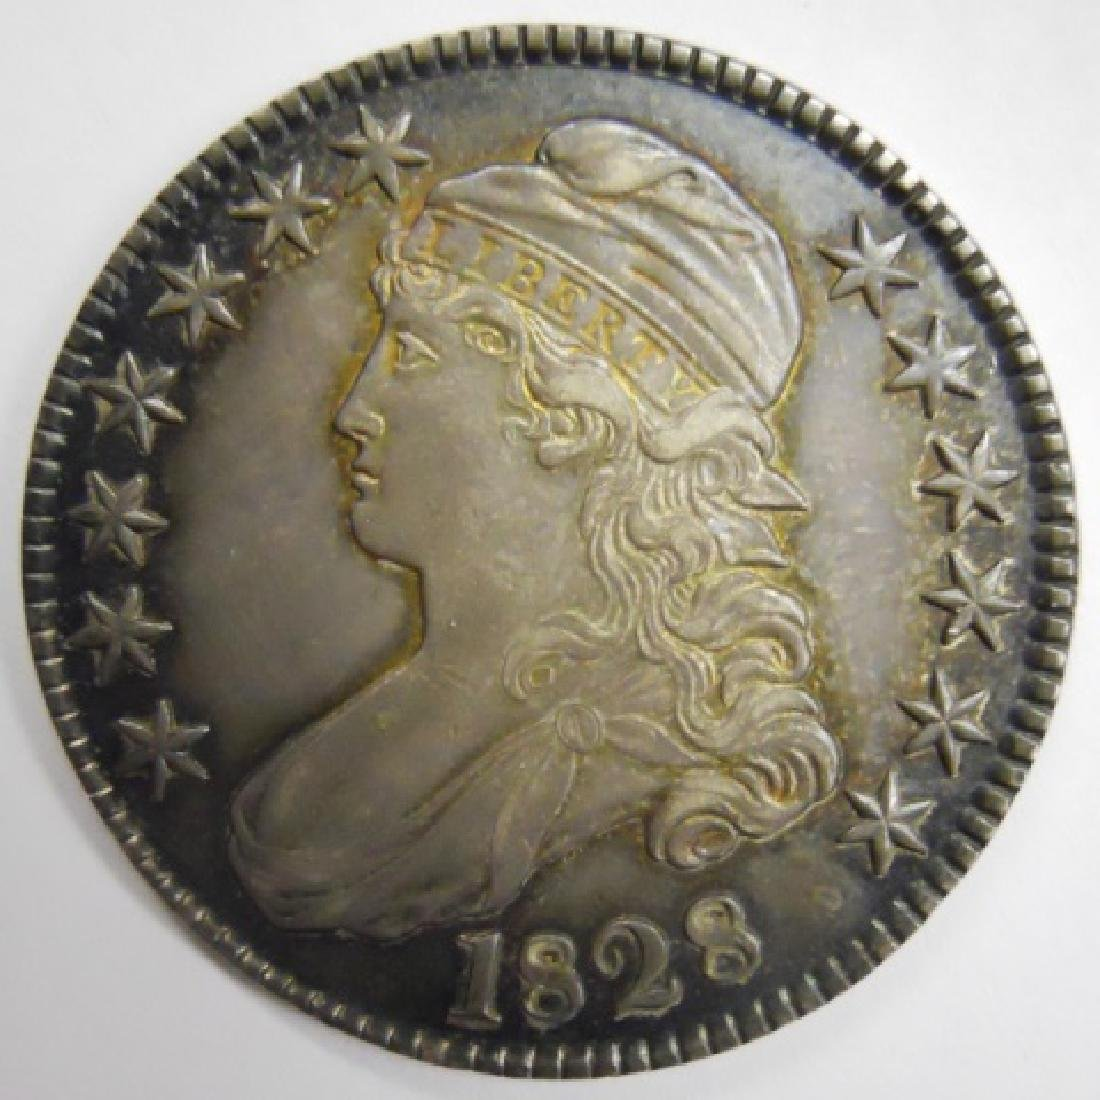 1828 US Bust Half Dollar, About Uncirculated